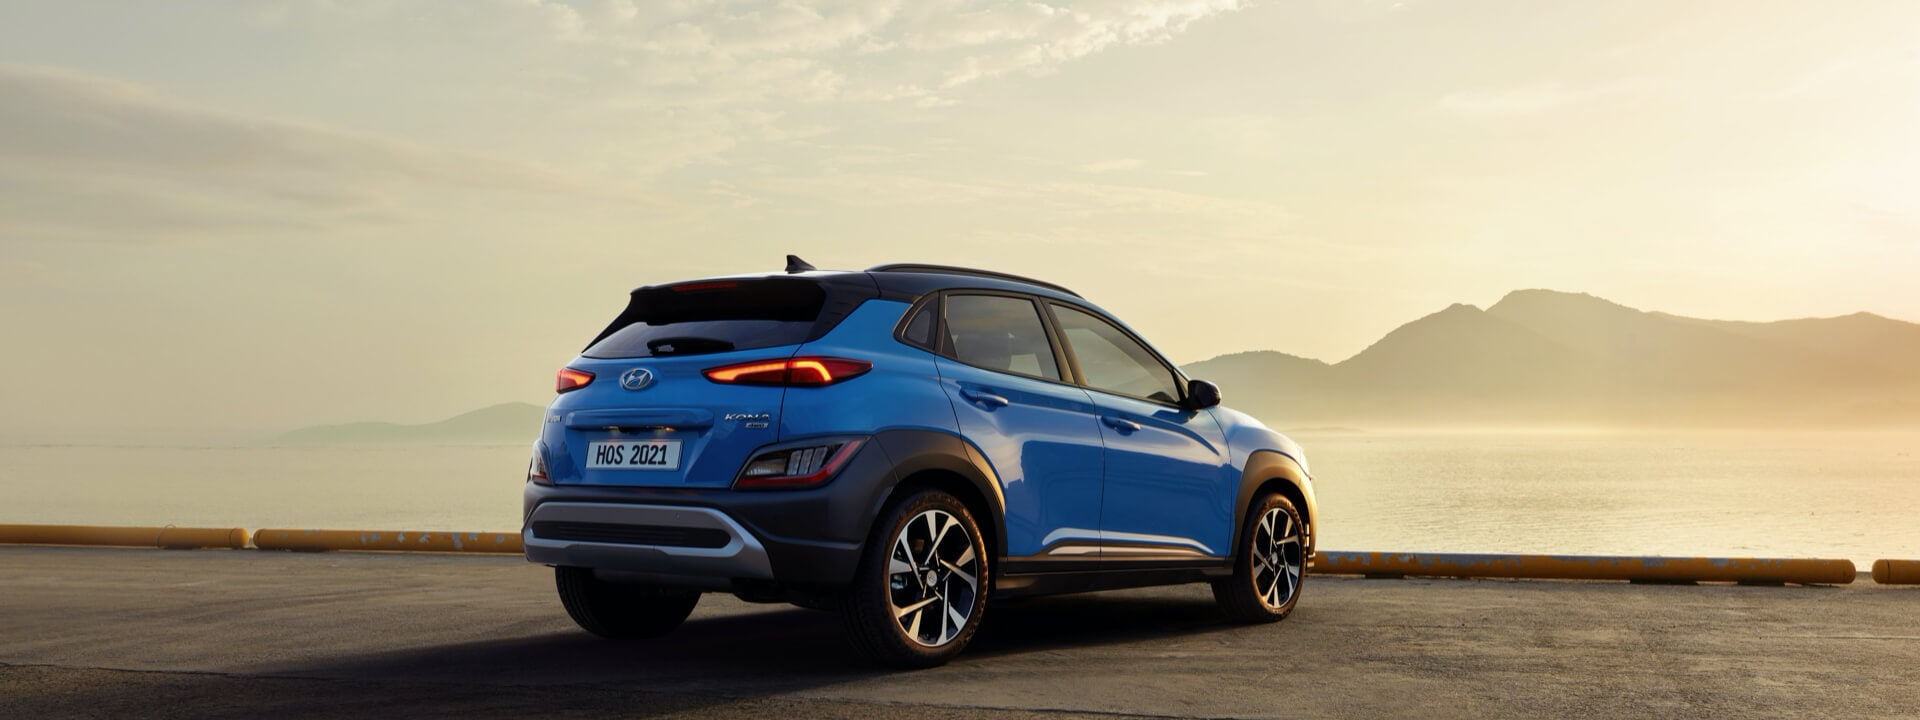 Hyundai Motor unveils stylish enhancements for KONA and launches sporty all-new KONA N Line.